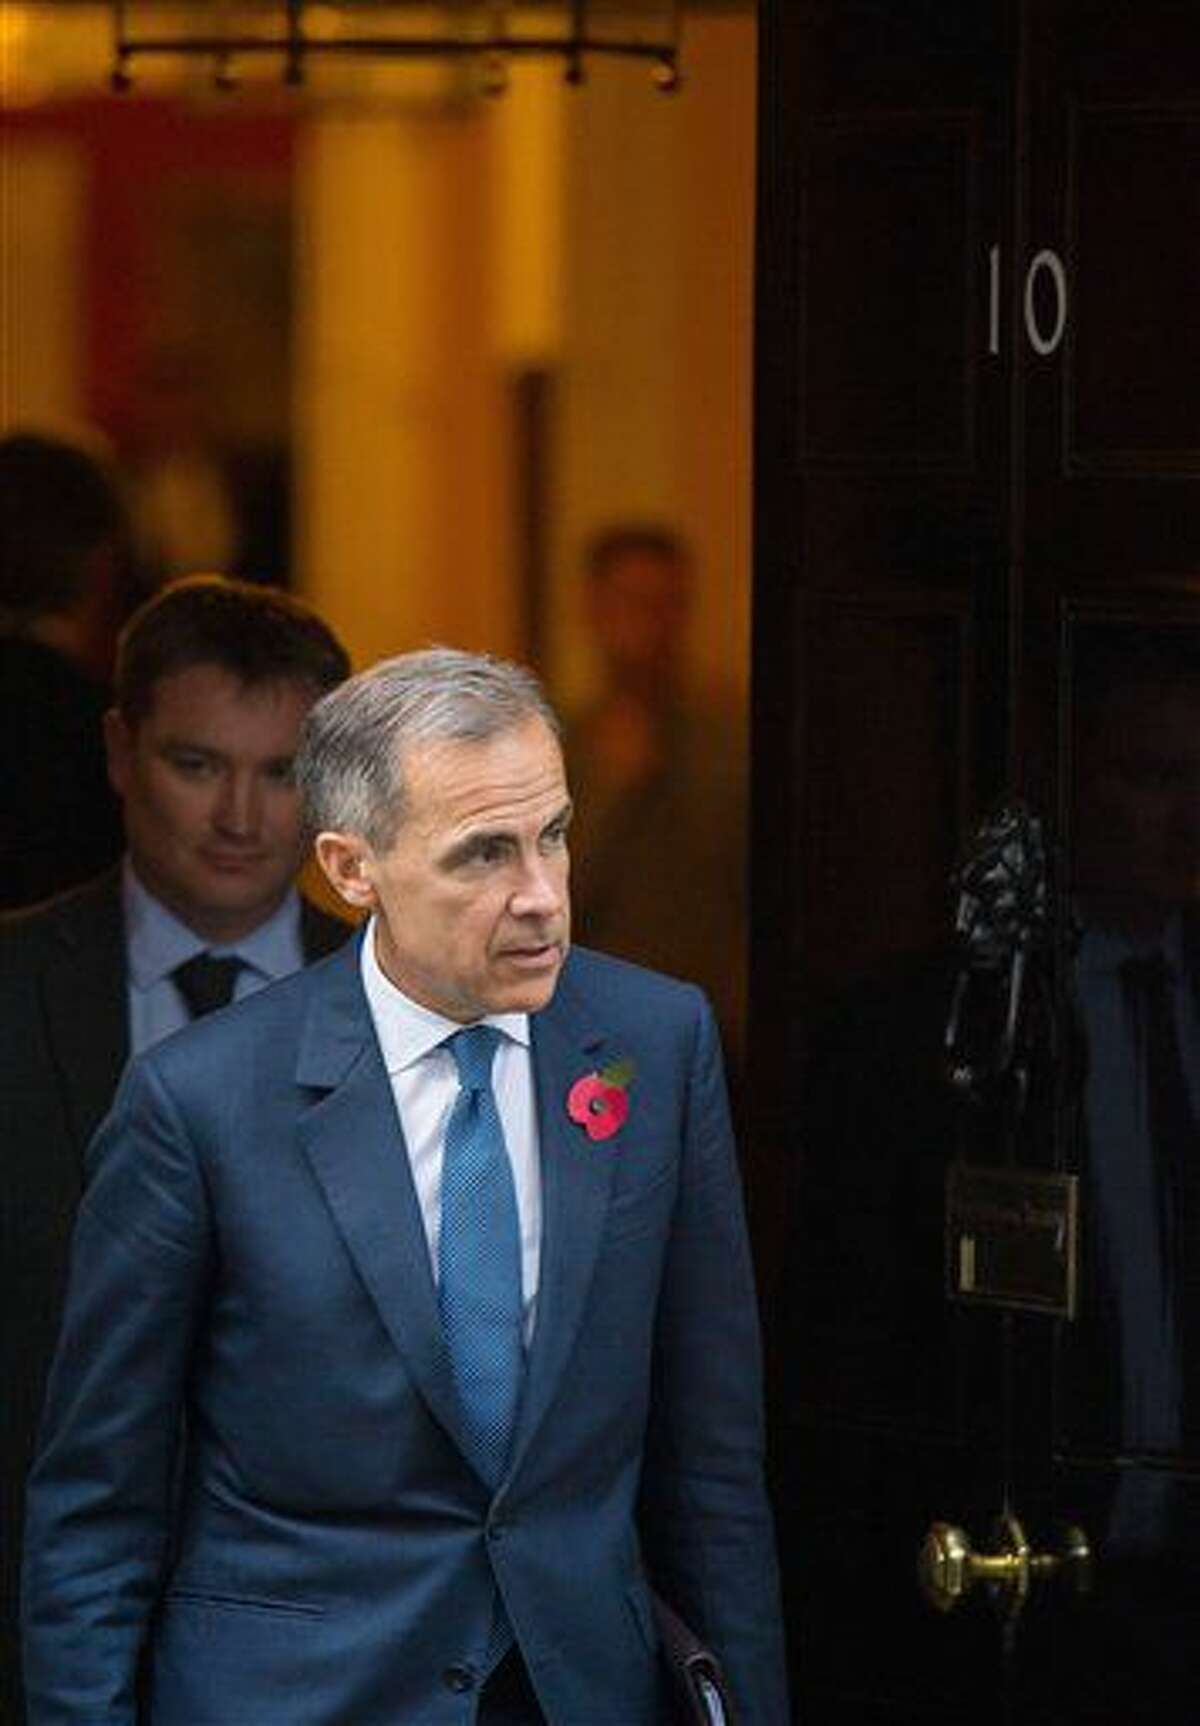 Bank of England governor Mark Carney leaves No.10 Downing Street, London, Monday Oct. 31, 2016, after a regular meeting. Britain's government is offering strong support for Bank of England's Mark Carney amid speculation that he'll soon announce whether he'll serve his full term as governor. (Dominic Lipinski/PA via AP)